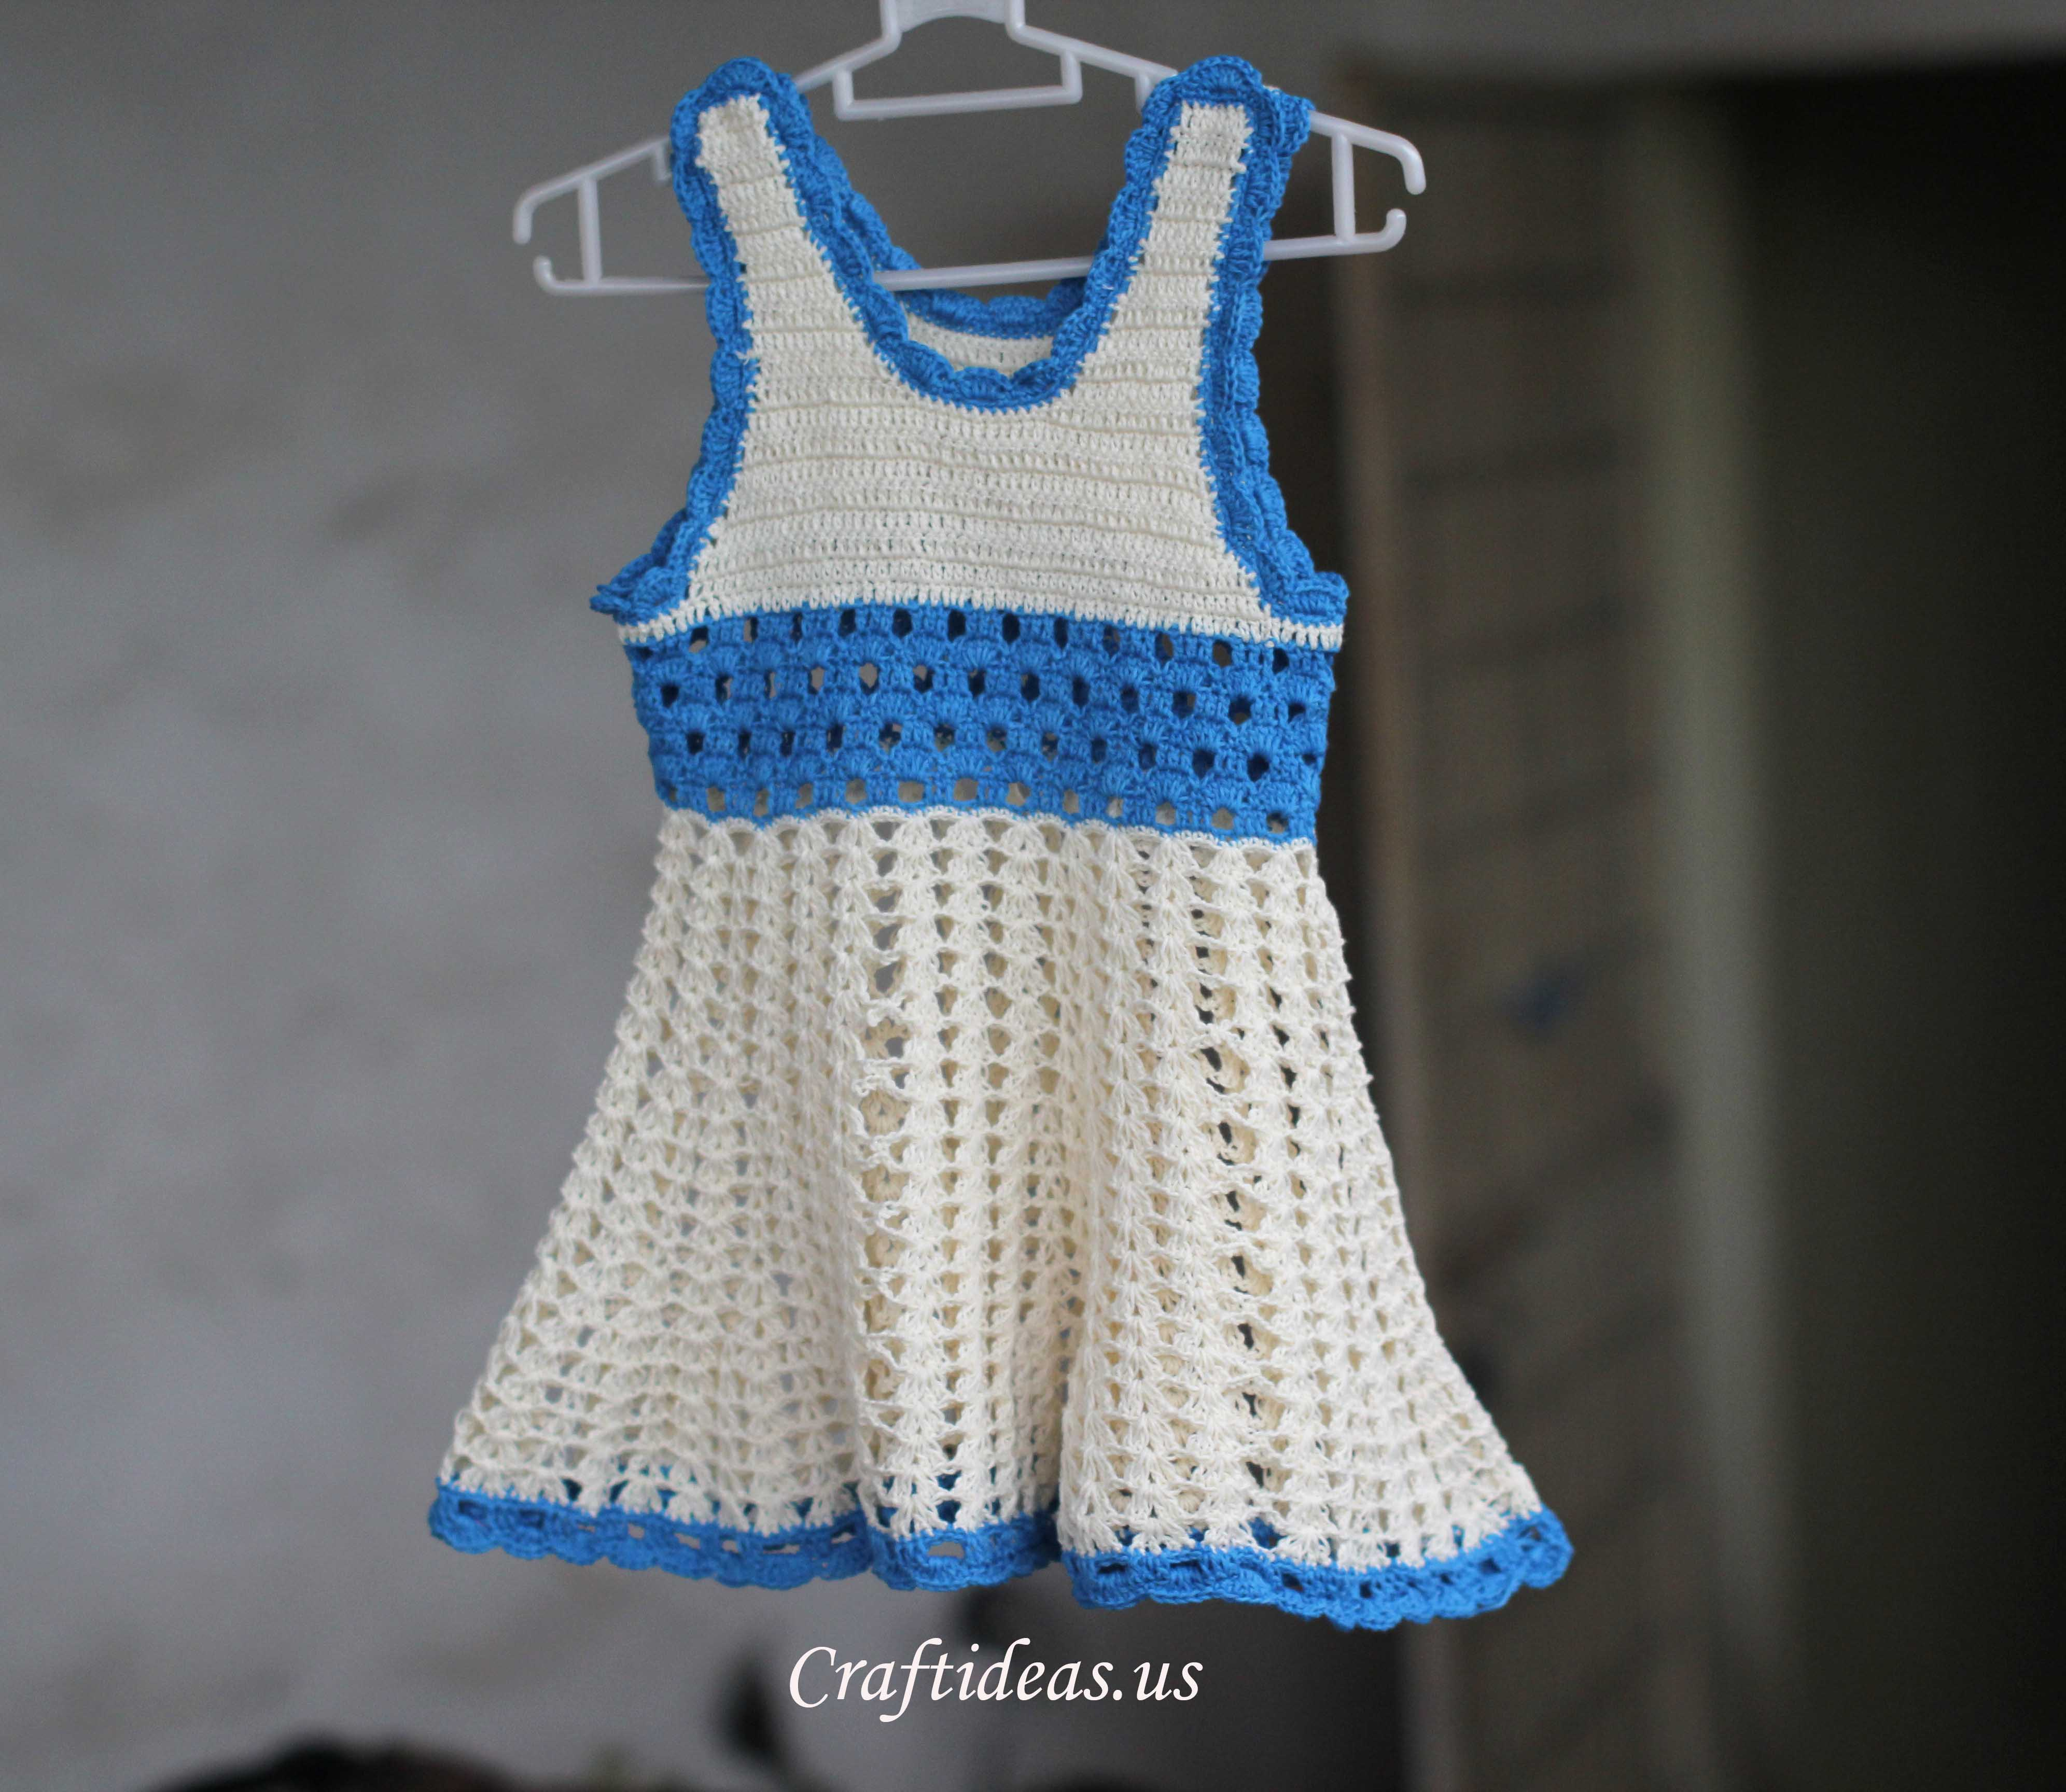 Crochet dress for baby girls 2 - 2.5 years old - Craft Ideas